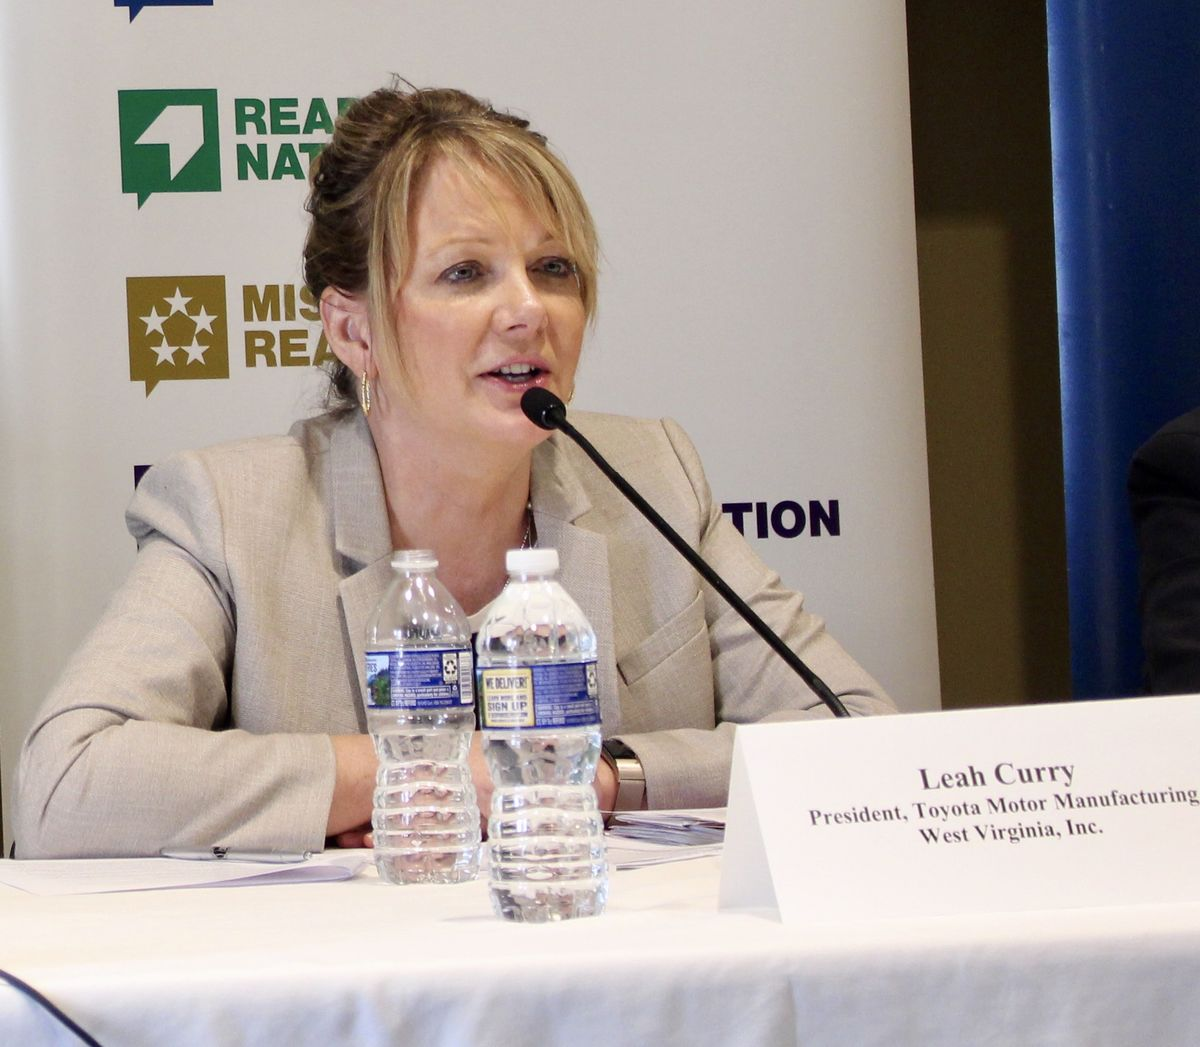 Leah Curry, President of Toyota Motor Manufacturing West Virginia Inc;